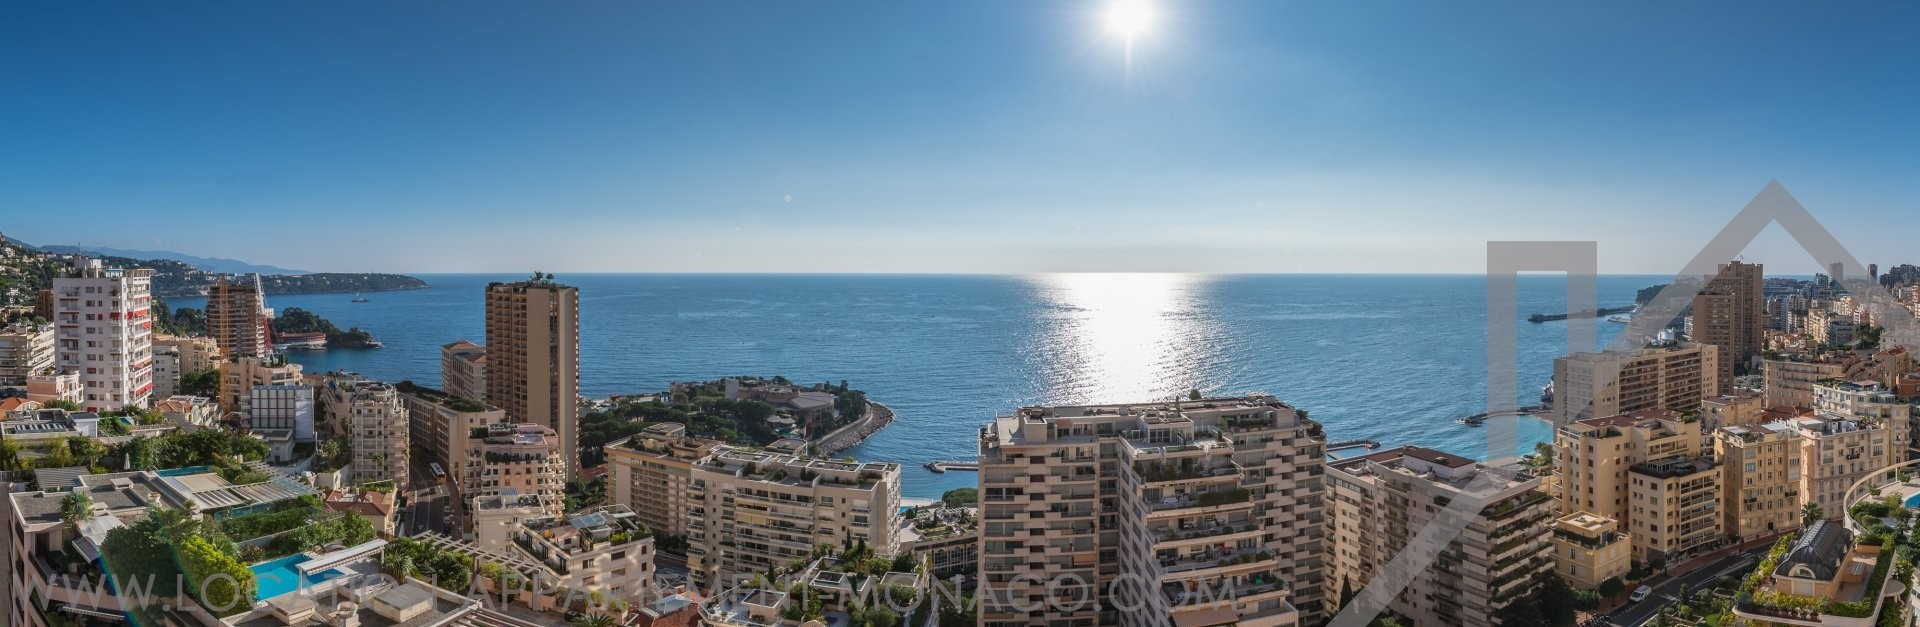 La Rousse – Château Périgord II  – 2  Bedroom renovated apartmen - Apartments for rent in Monaco